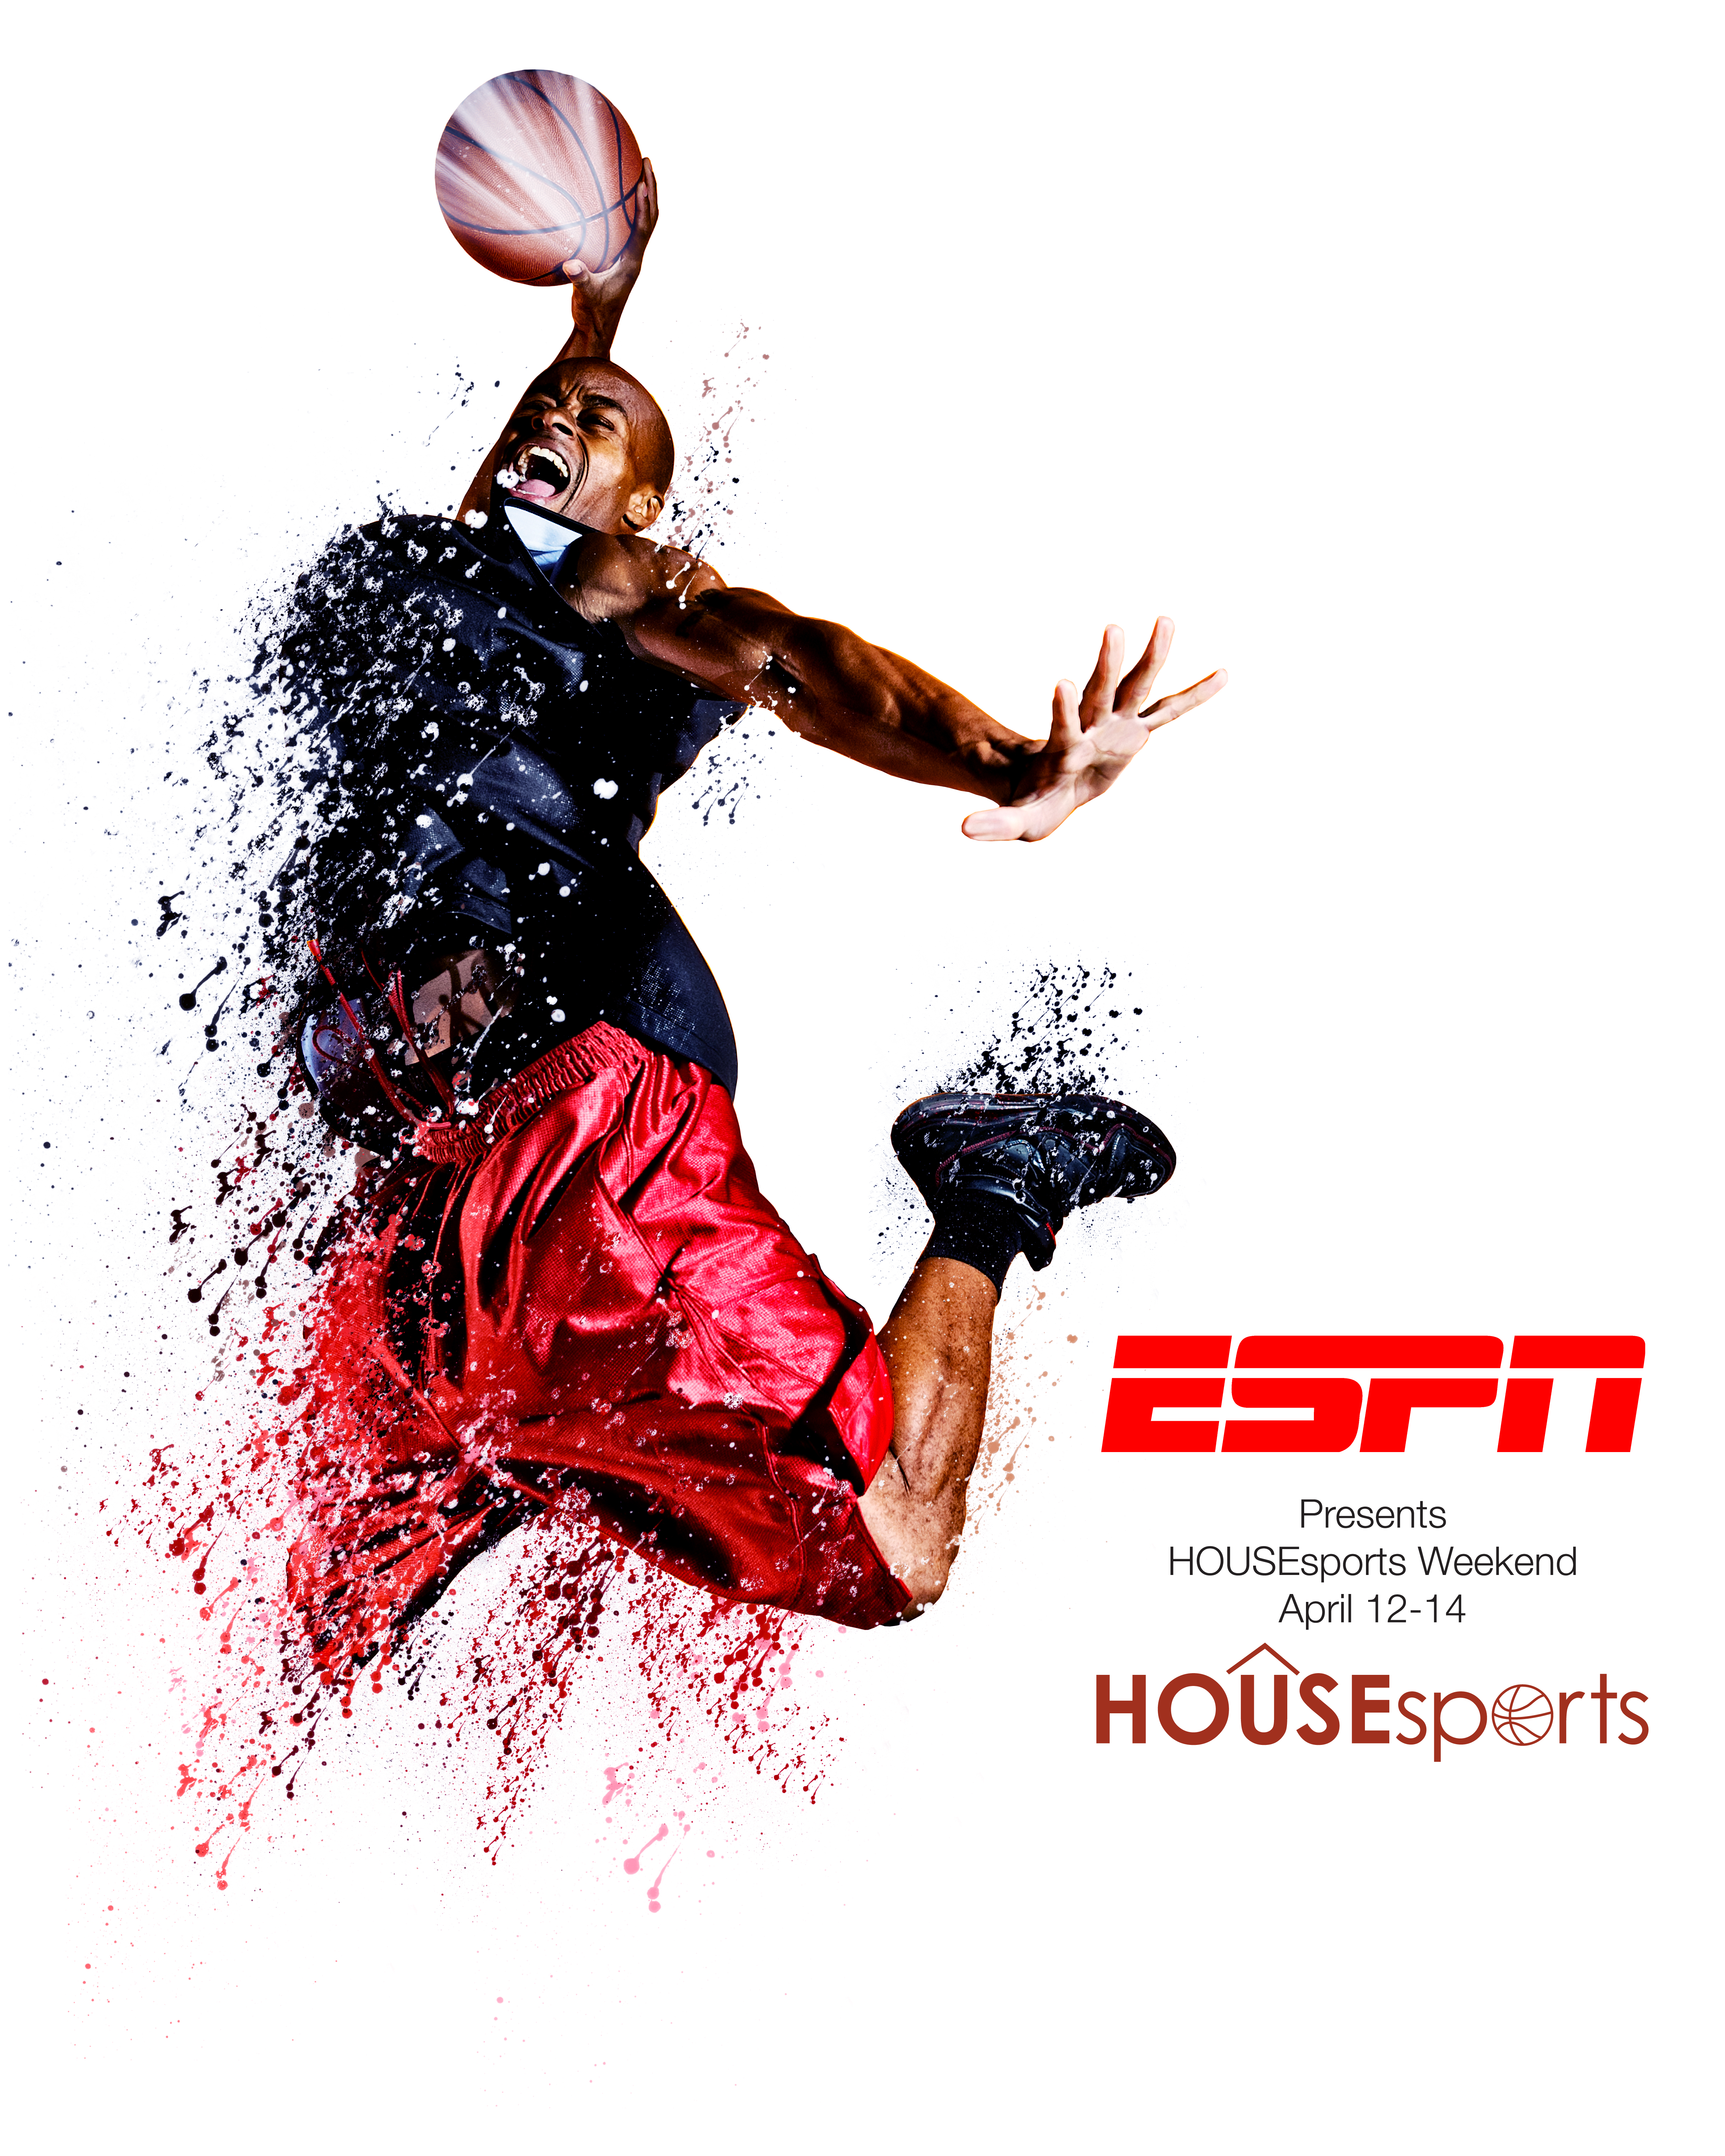 Poster design pinterest - Explore Sport Design Sports Posters And More